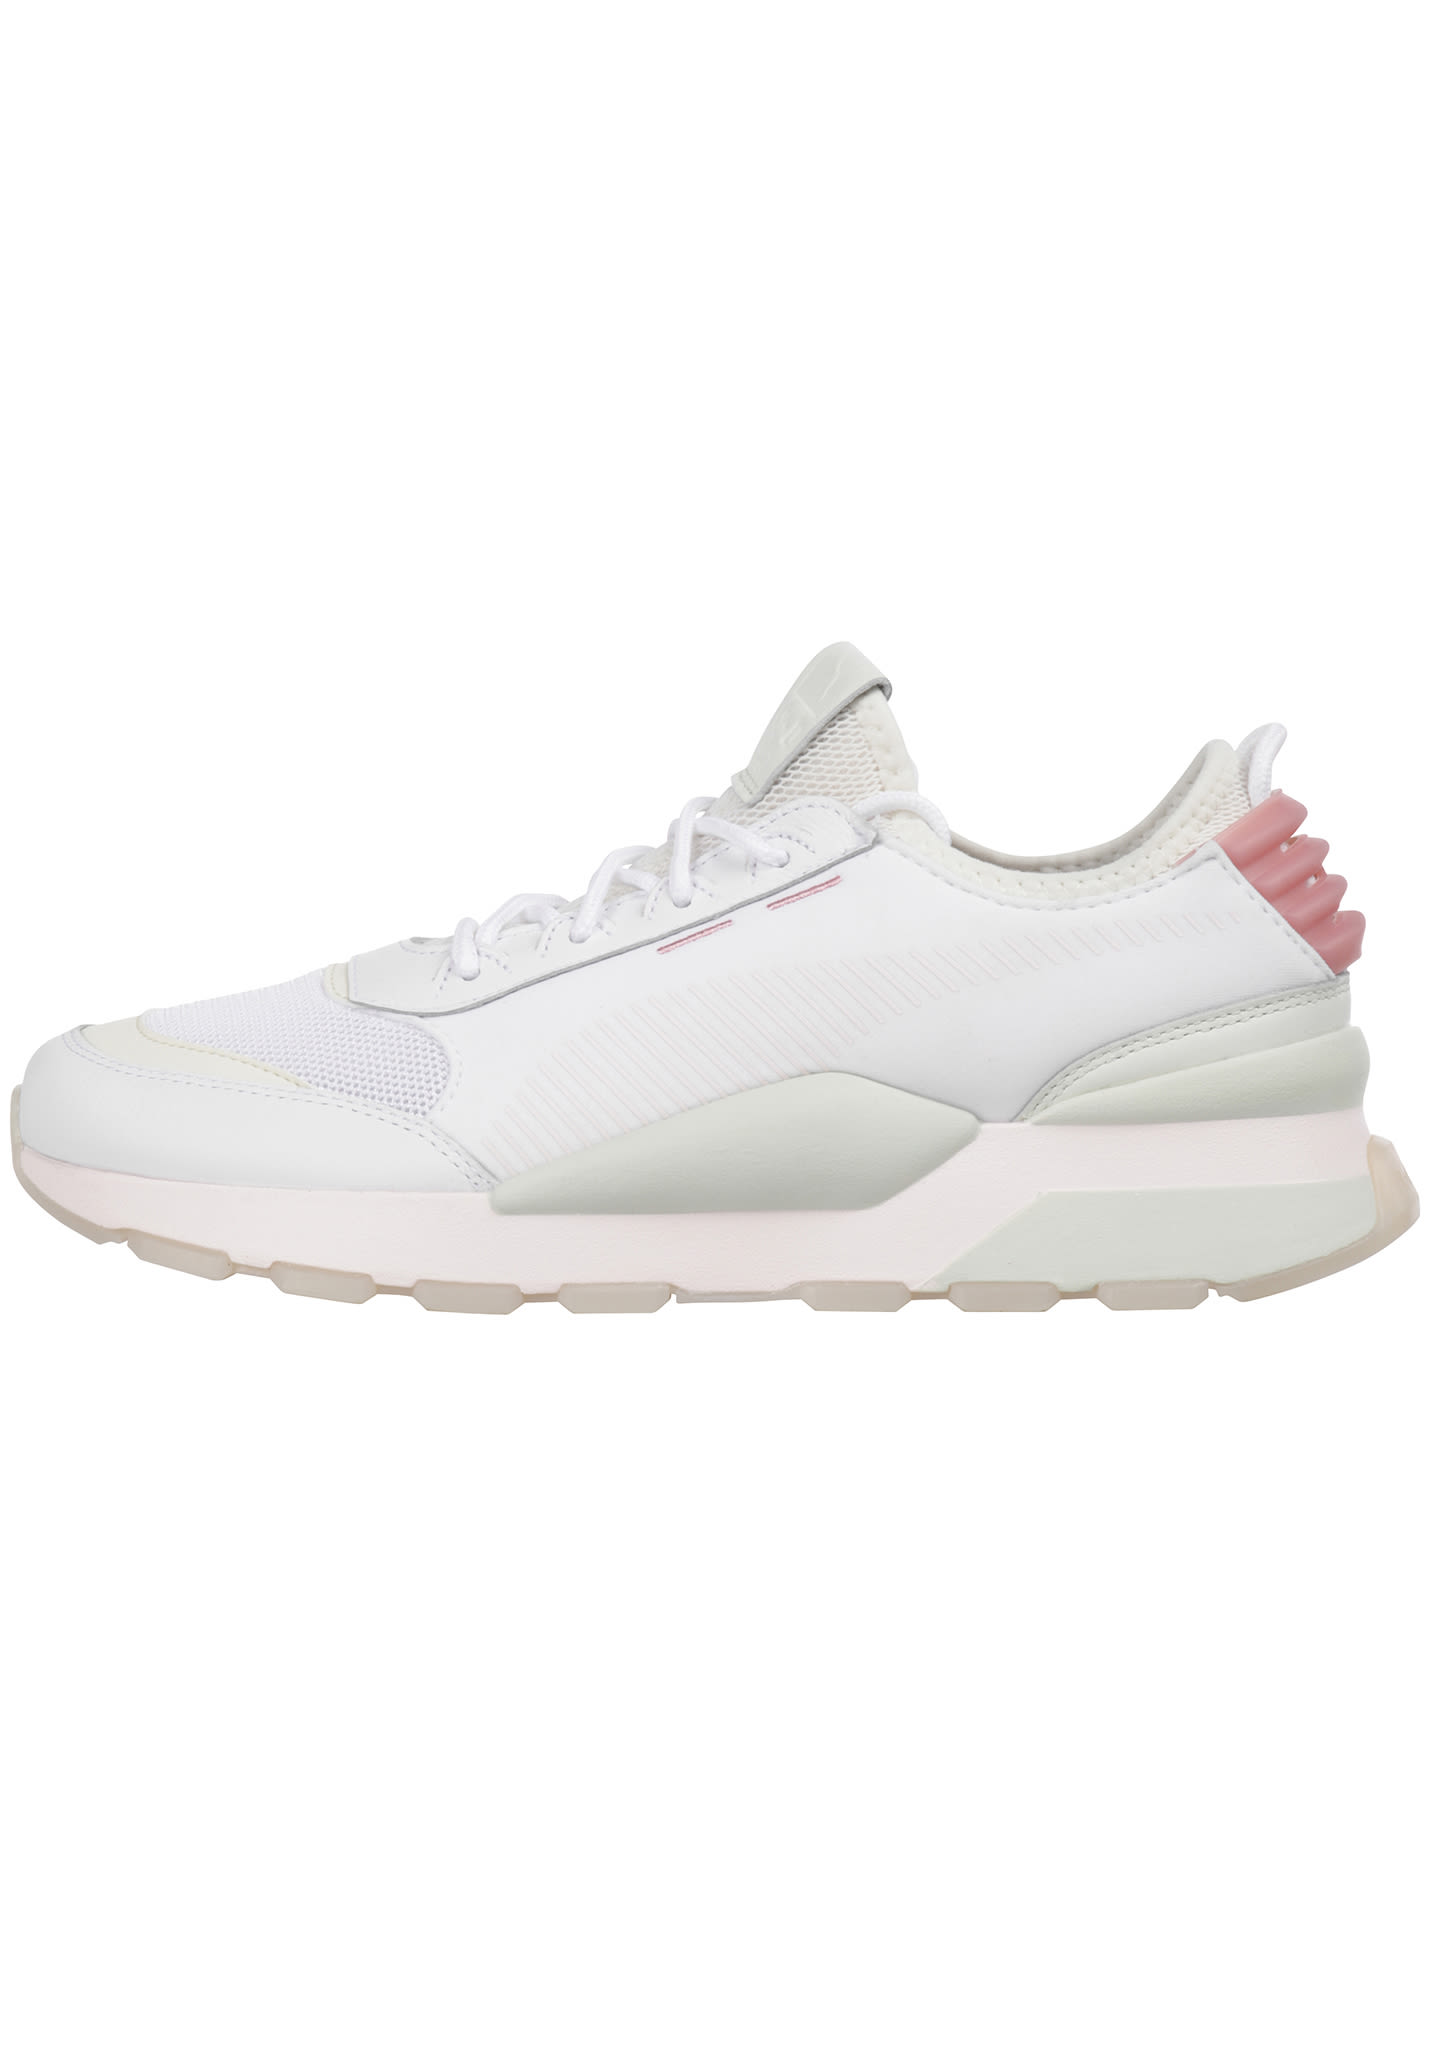 67dcff9159a Puma Rs-0 Tracks - Sneakers - Wit - Planet Sports